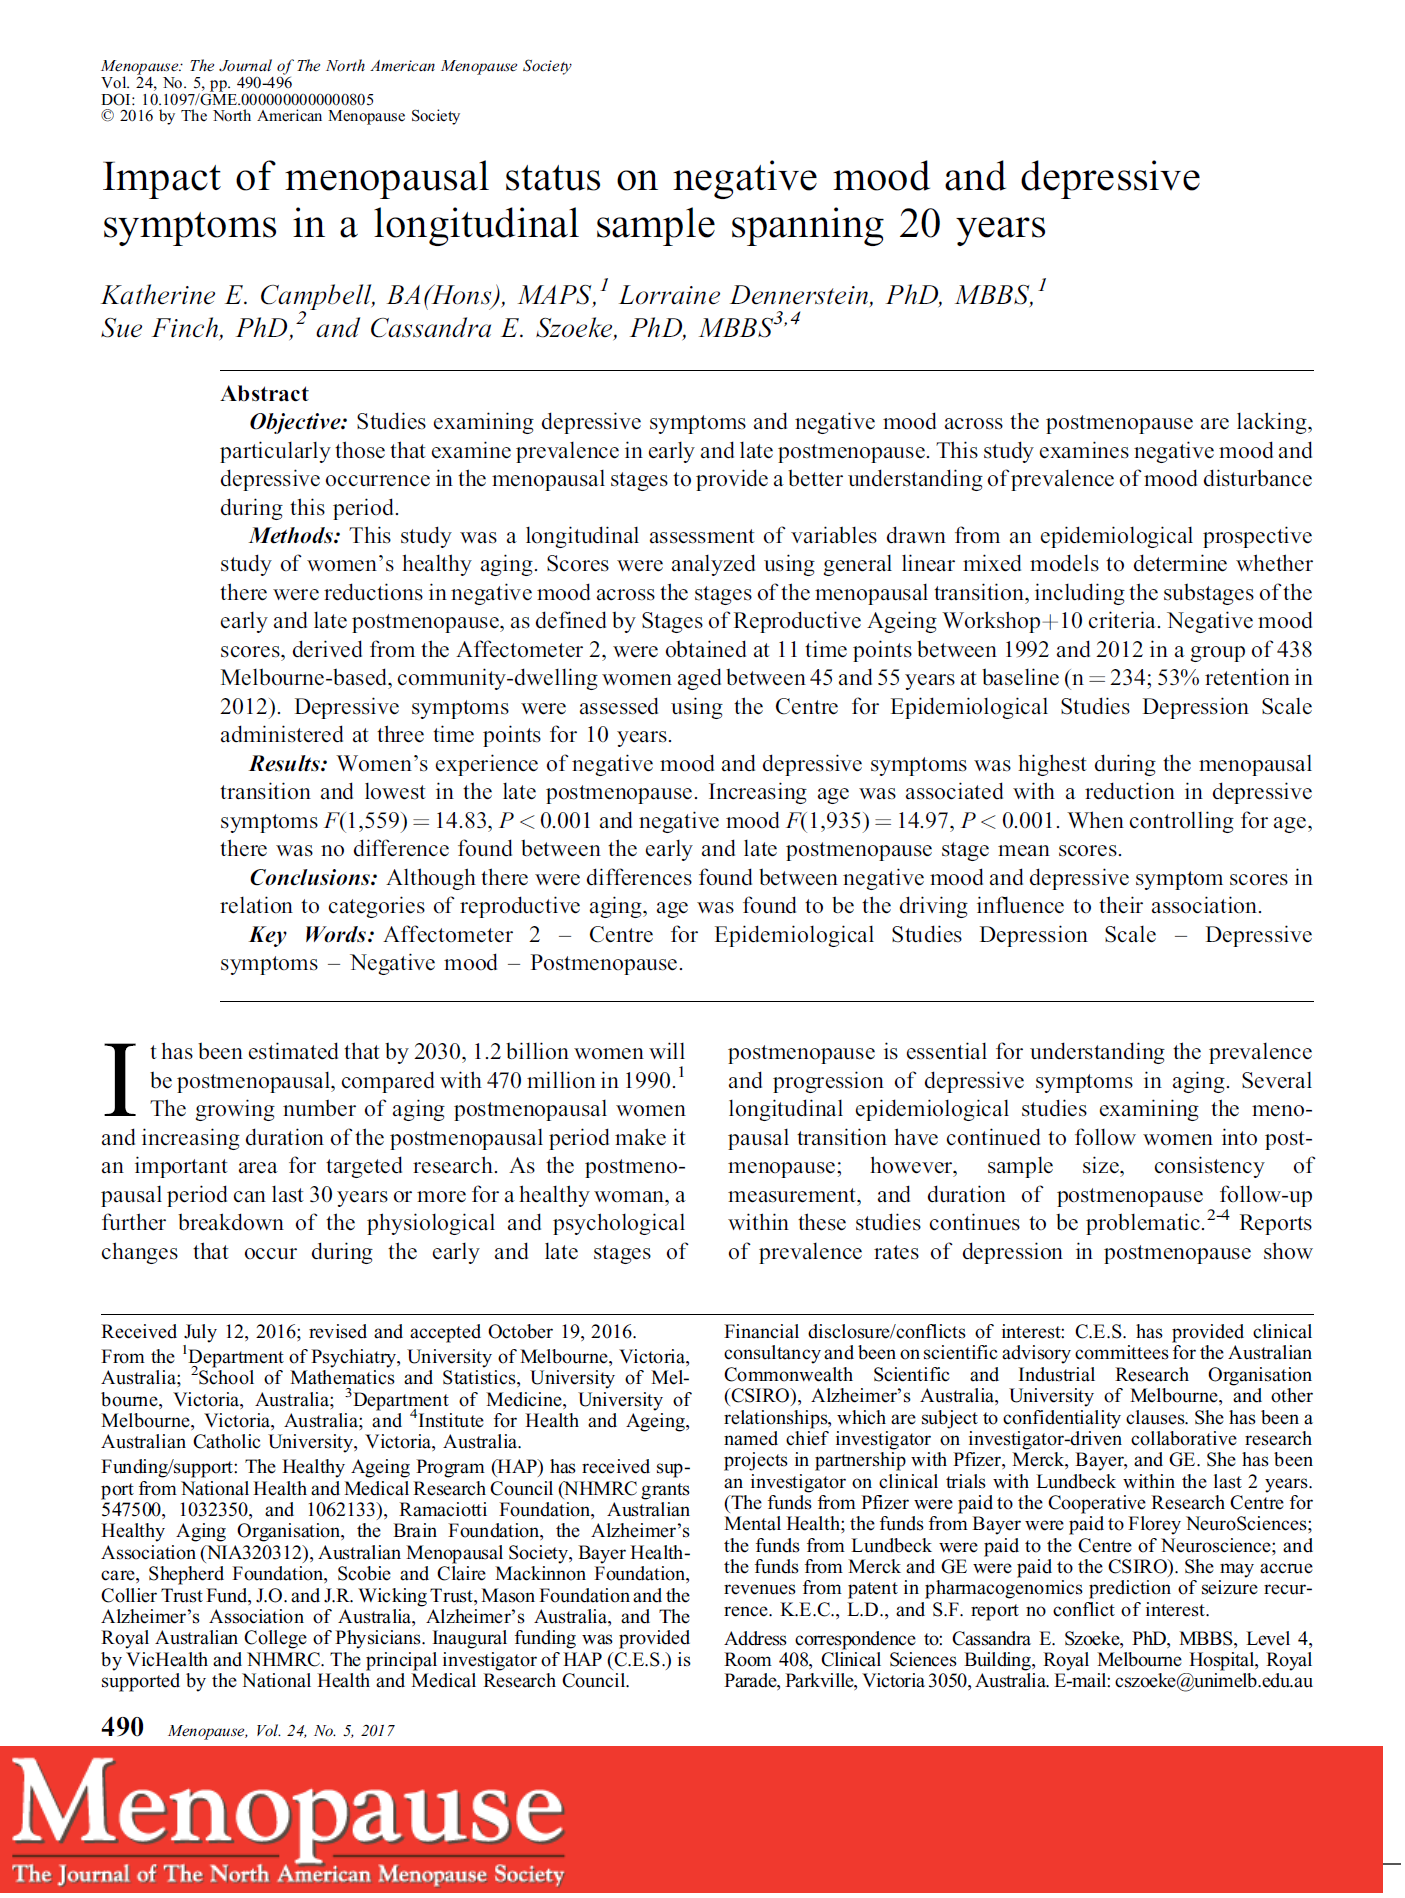 Impact of menopausal status on negative mood and depressive symptoms in a longitudinal Sample spanning 20 years - Few studies have examined the changes in negative mood and depressive symptoms reported during menopause and postmenopause.This study reports that while these symptoms are highest during the menopausal transition and lowest during post menopause,age was more strongly associated with mood disturbance than menopausal status. Citation: Campbell, K., et al. (2017).Impact of menopausal status on negative mood and depressive symptoms in a longitudinal sample spanning 20 years.Menopause, 24(5),490-496. doi:10.1097/GME.0000000000000805